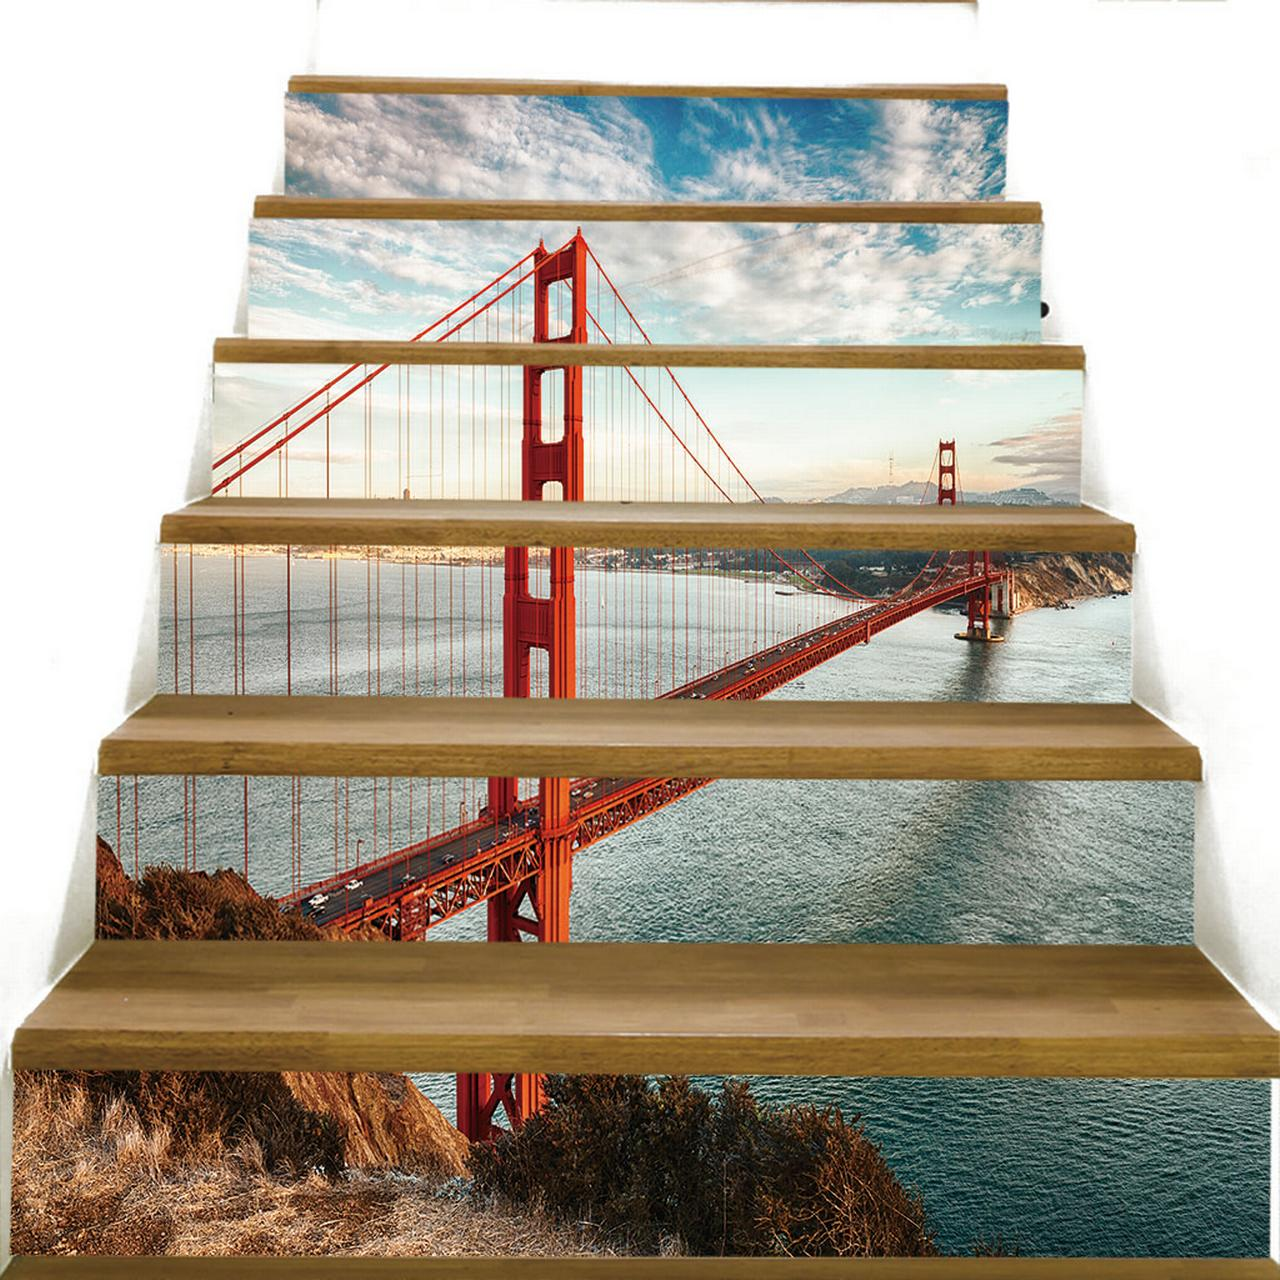 Details about  /6PCS 3D Stair Riser Staircase Sticker Photo Mural Vinyl Decal Scenery Wallpaper